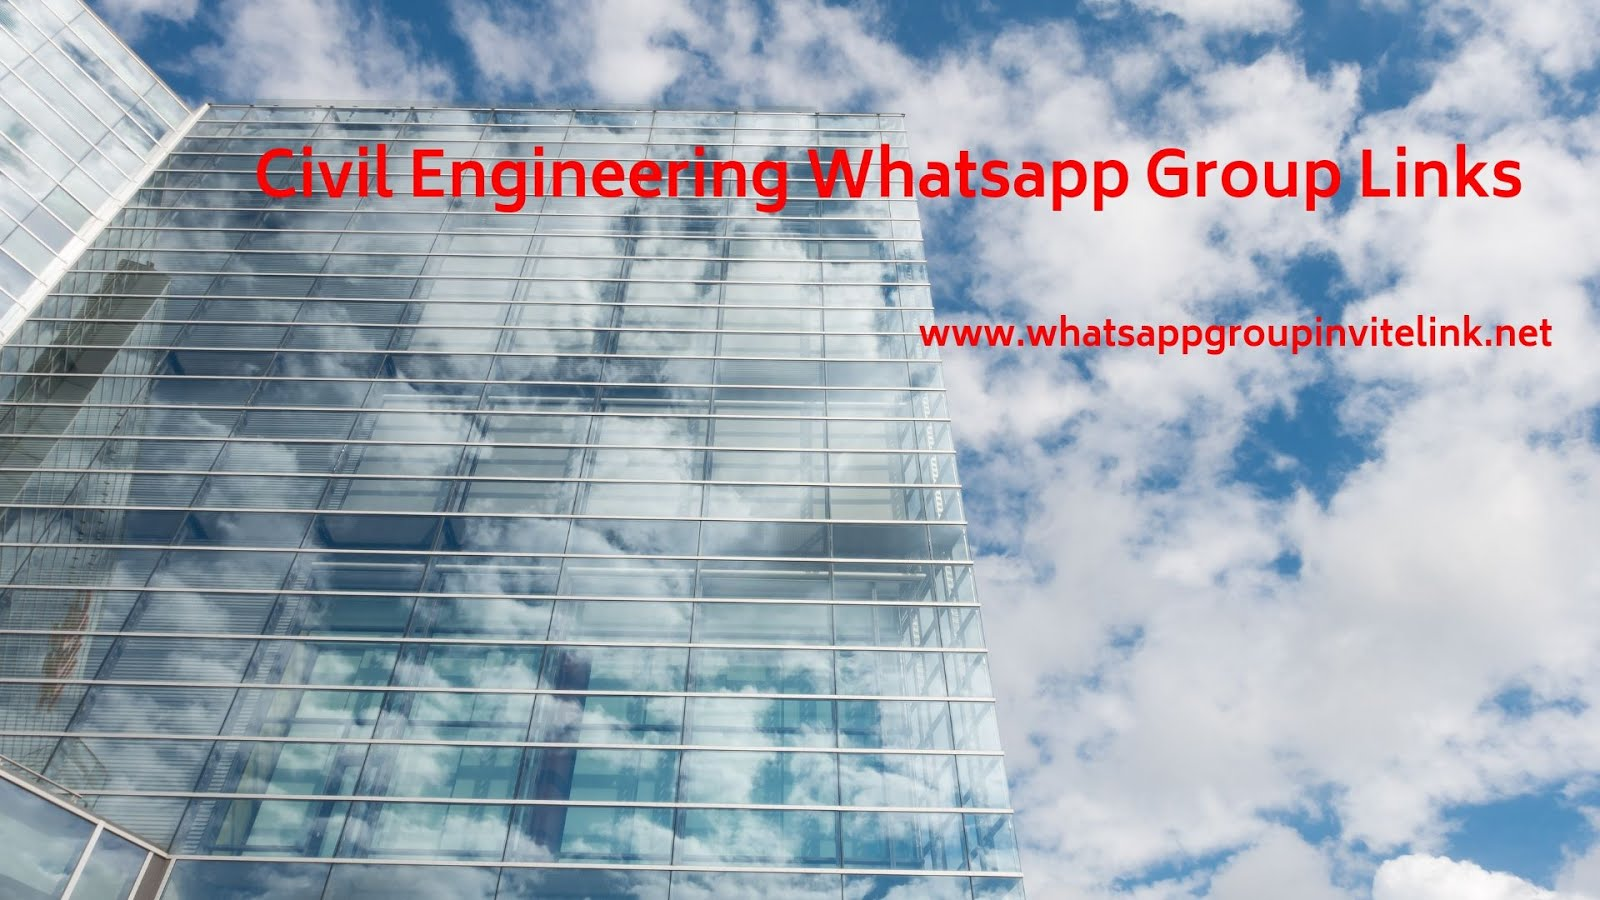 Whatsapp Group Invite Links: Civil Engineering Whatsapp Group Links